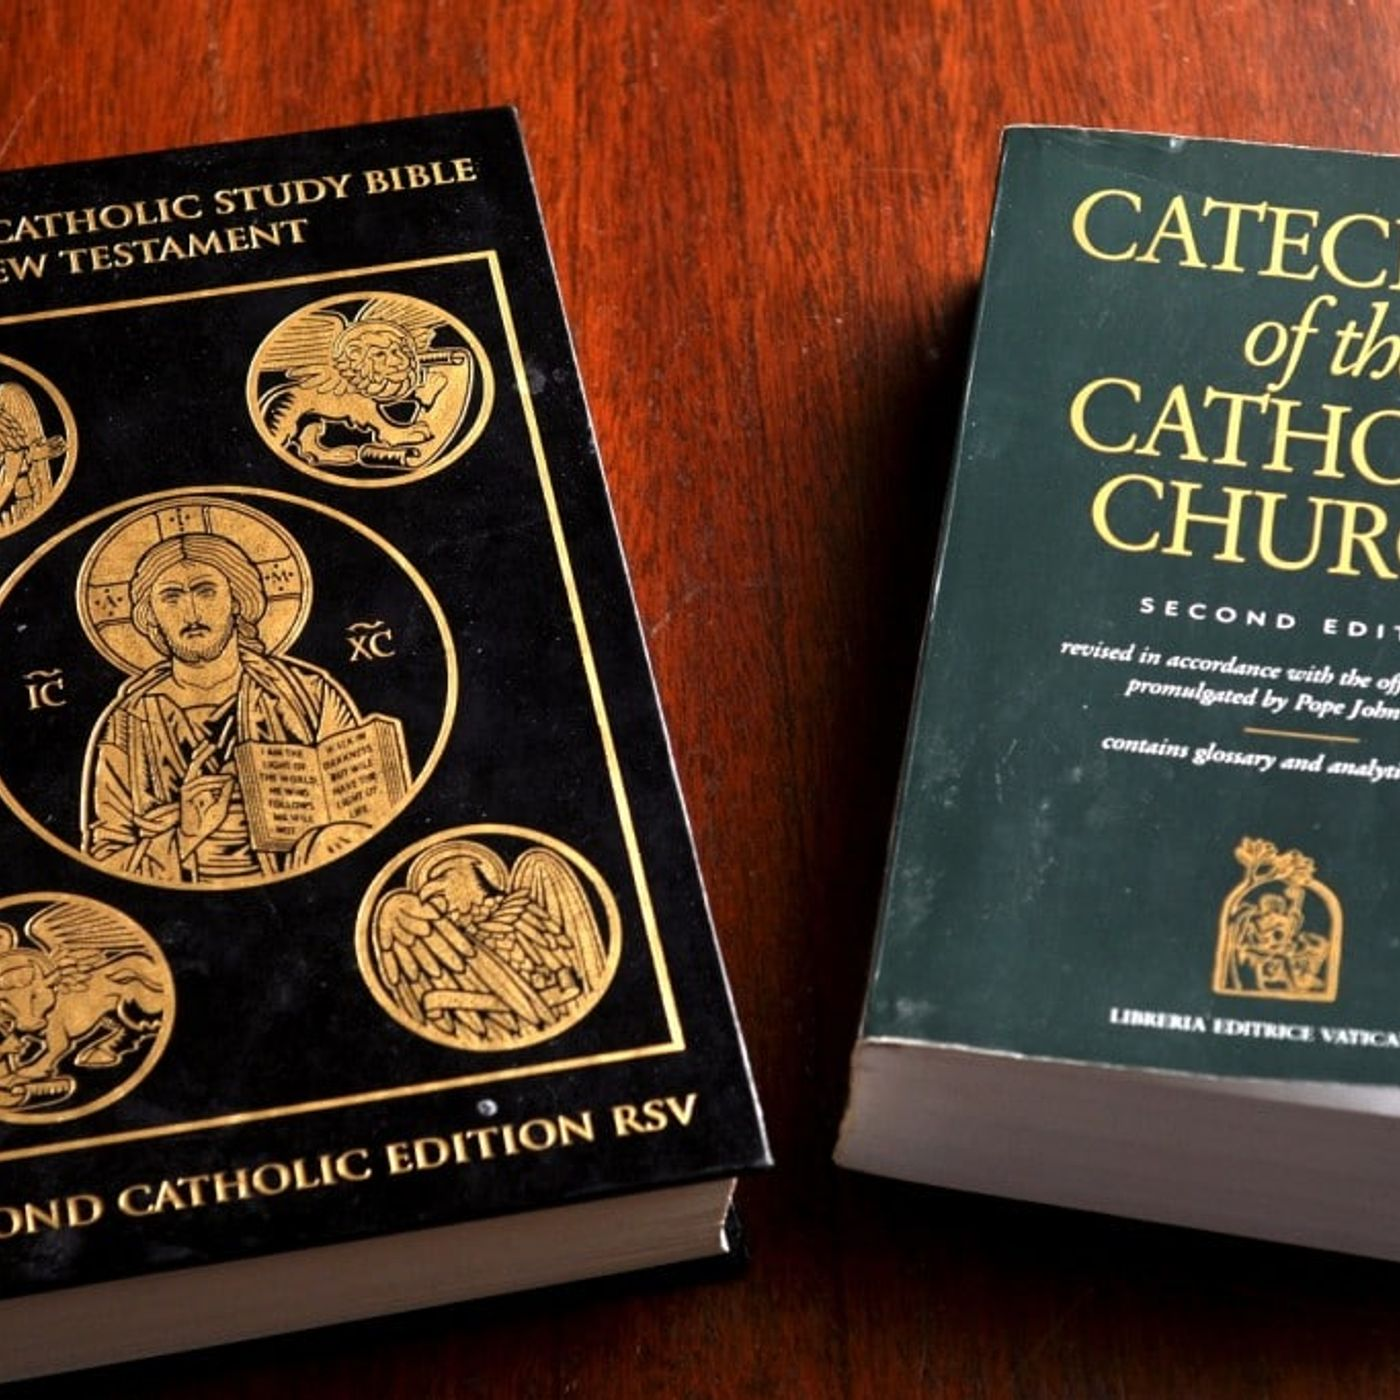 Catholic Catechism: The Profession of Faith Pt 4